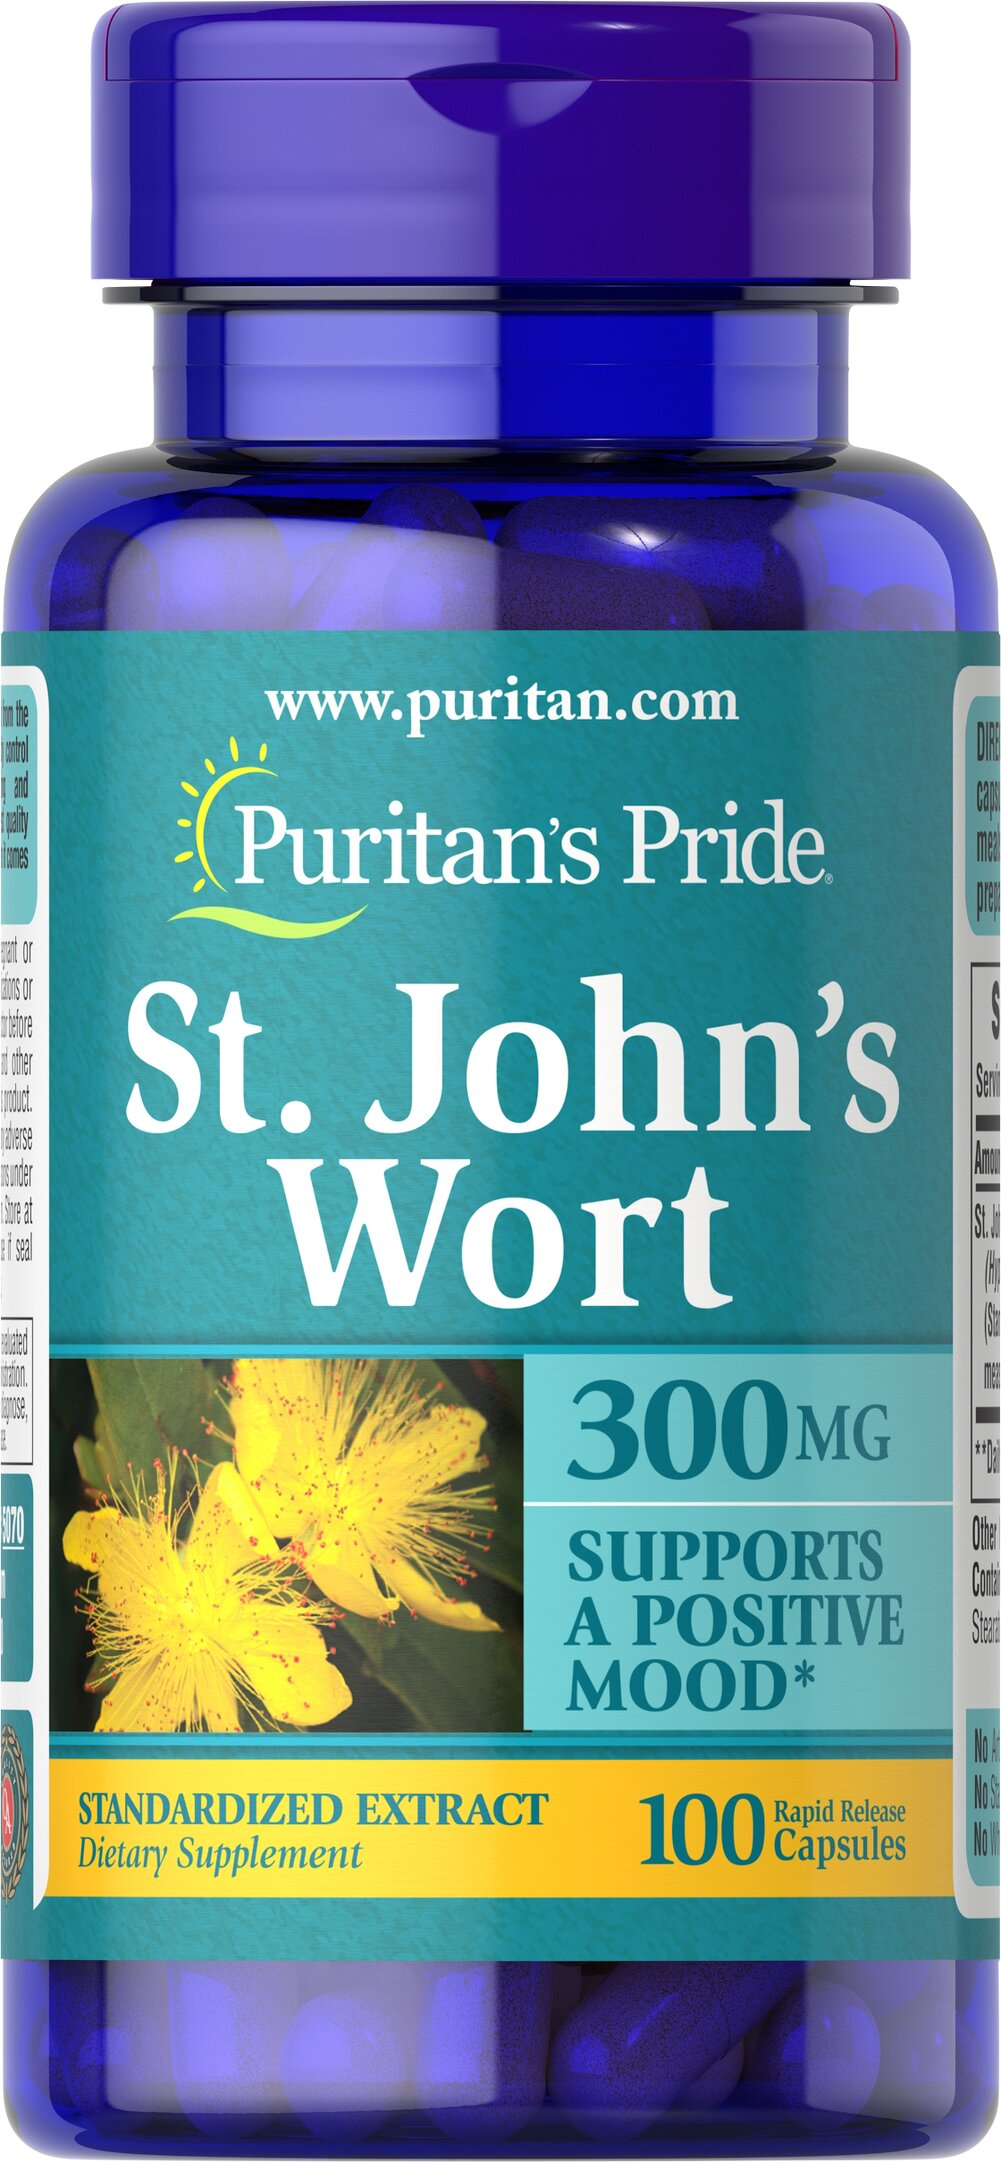 St. John's Wort Standardized Extract 300 mg Thumbnail Alternate Bottle View